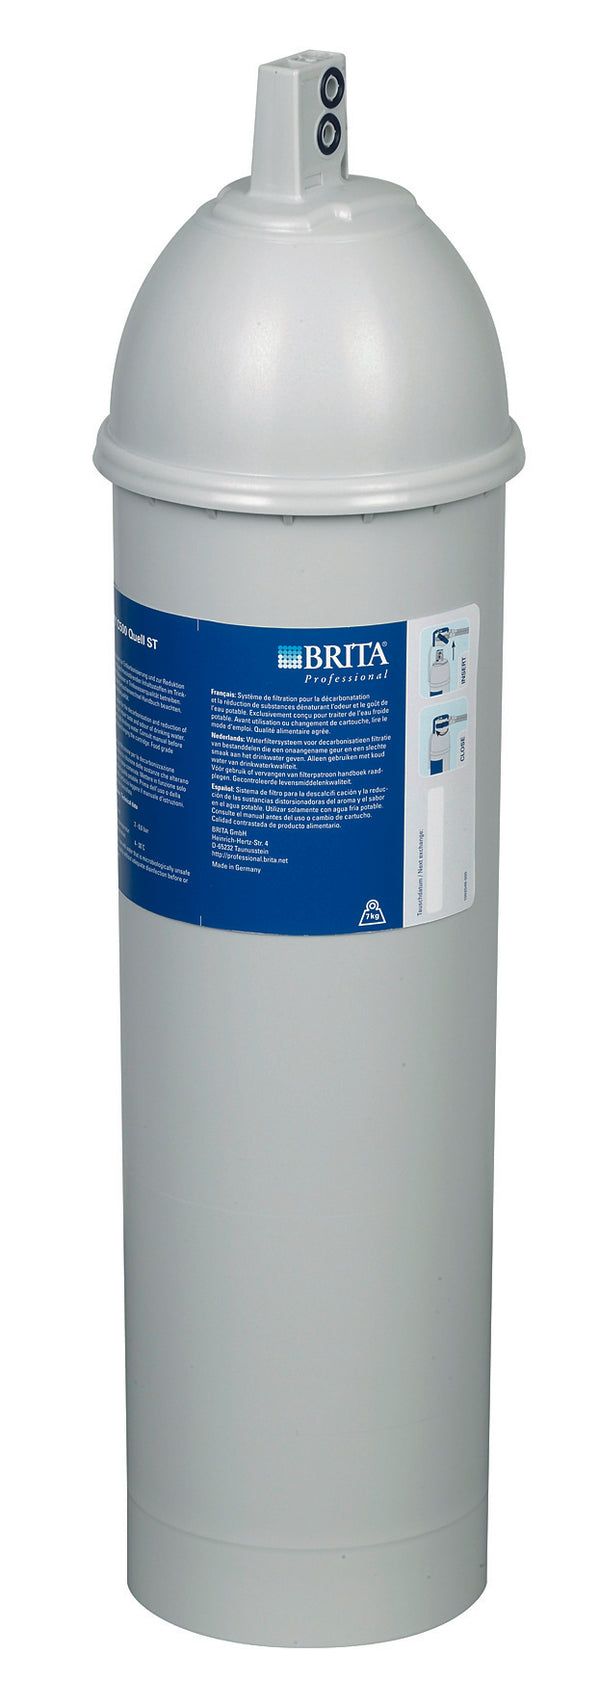 BRITA PURITY C 500 CARTRIDGE - Barista Shop